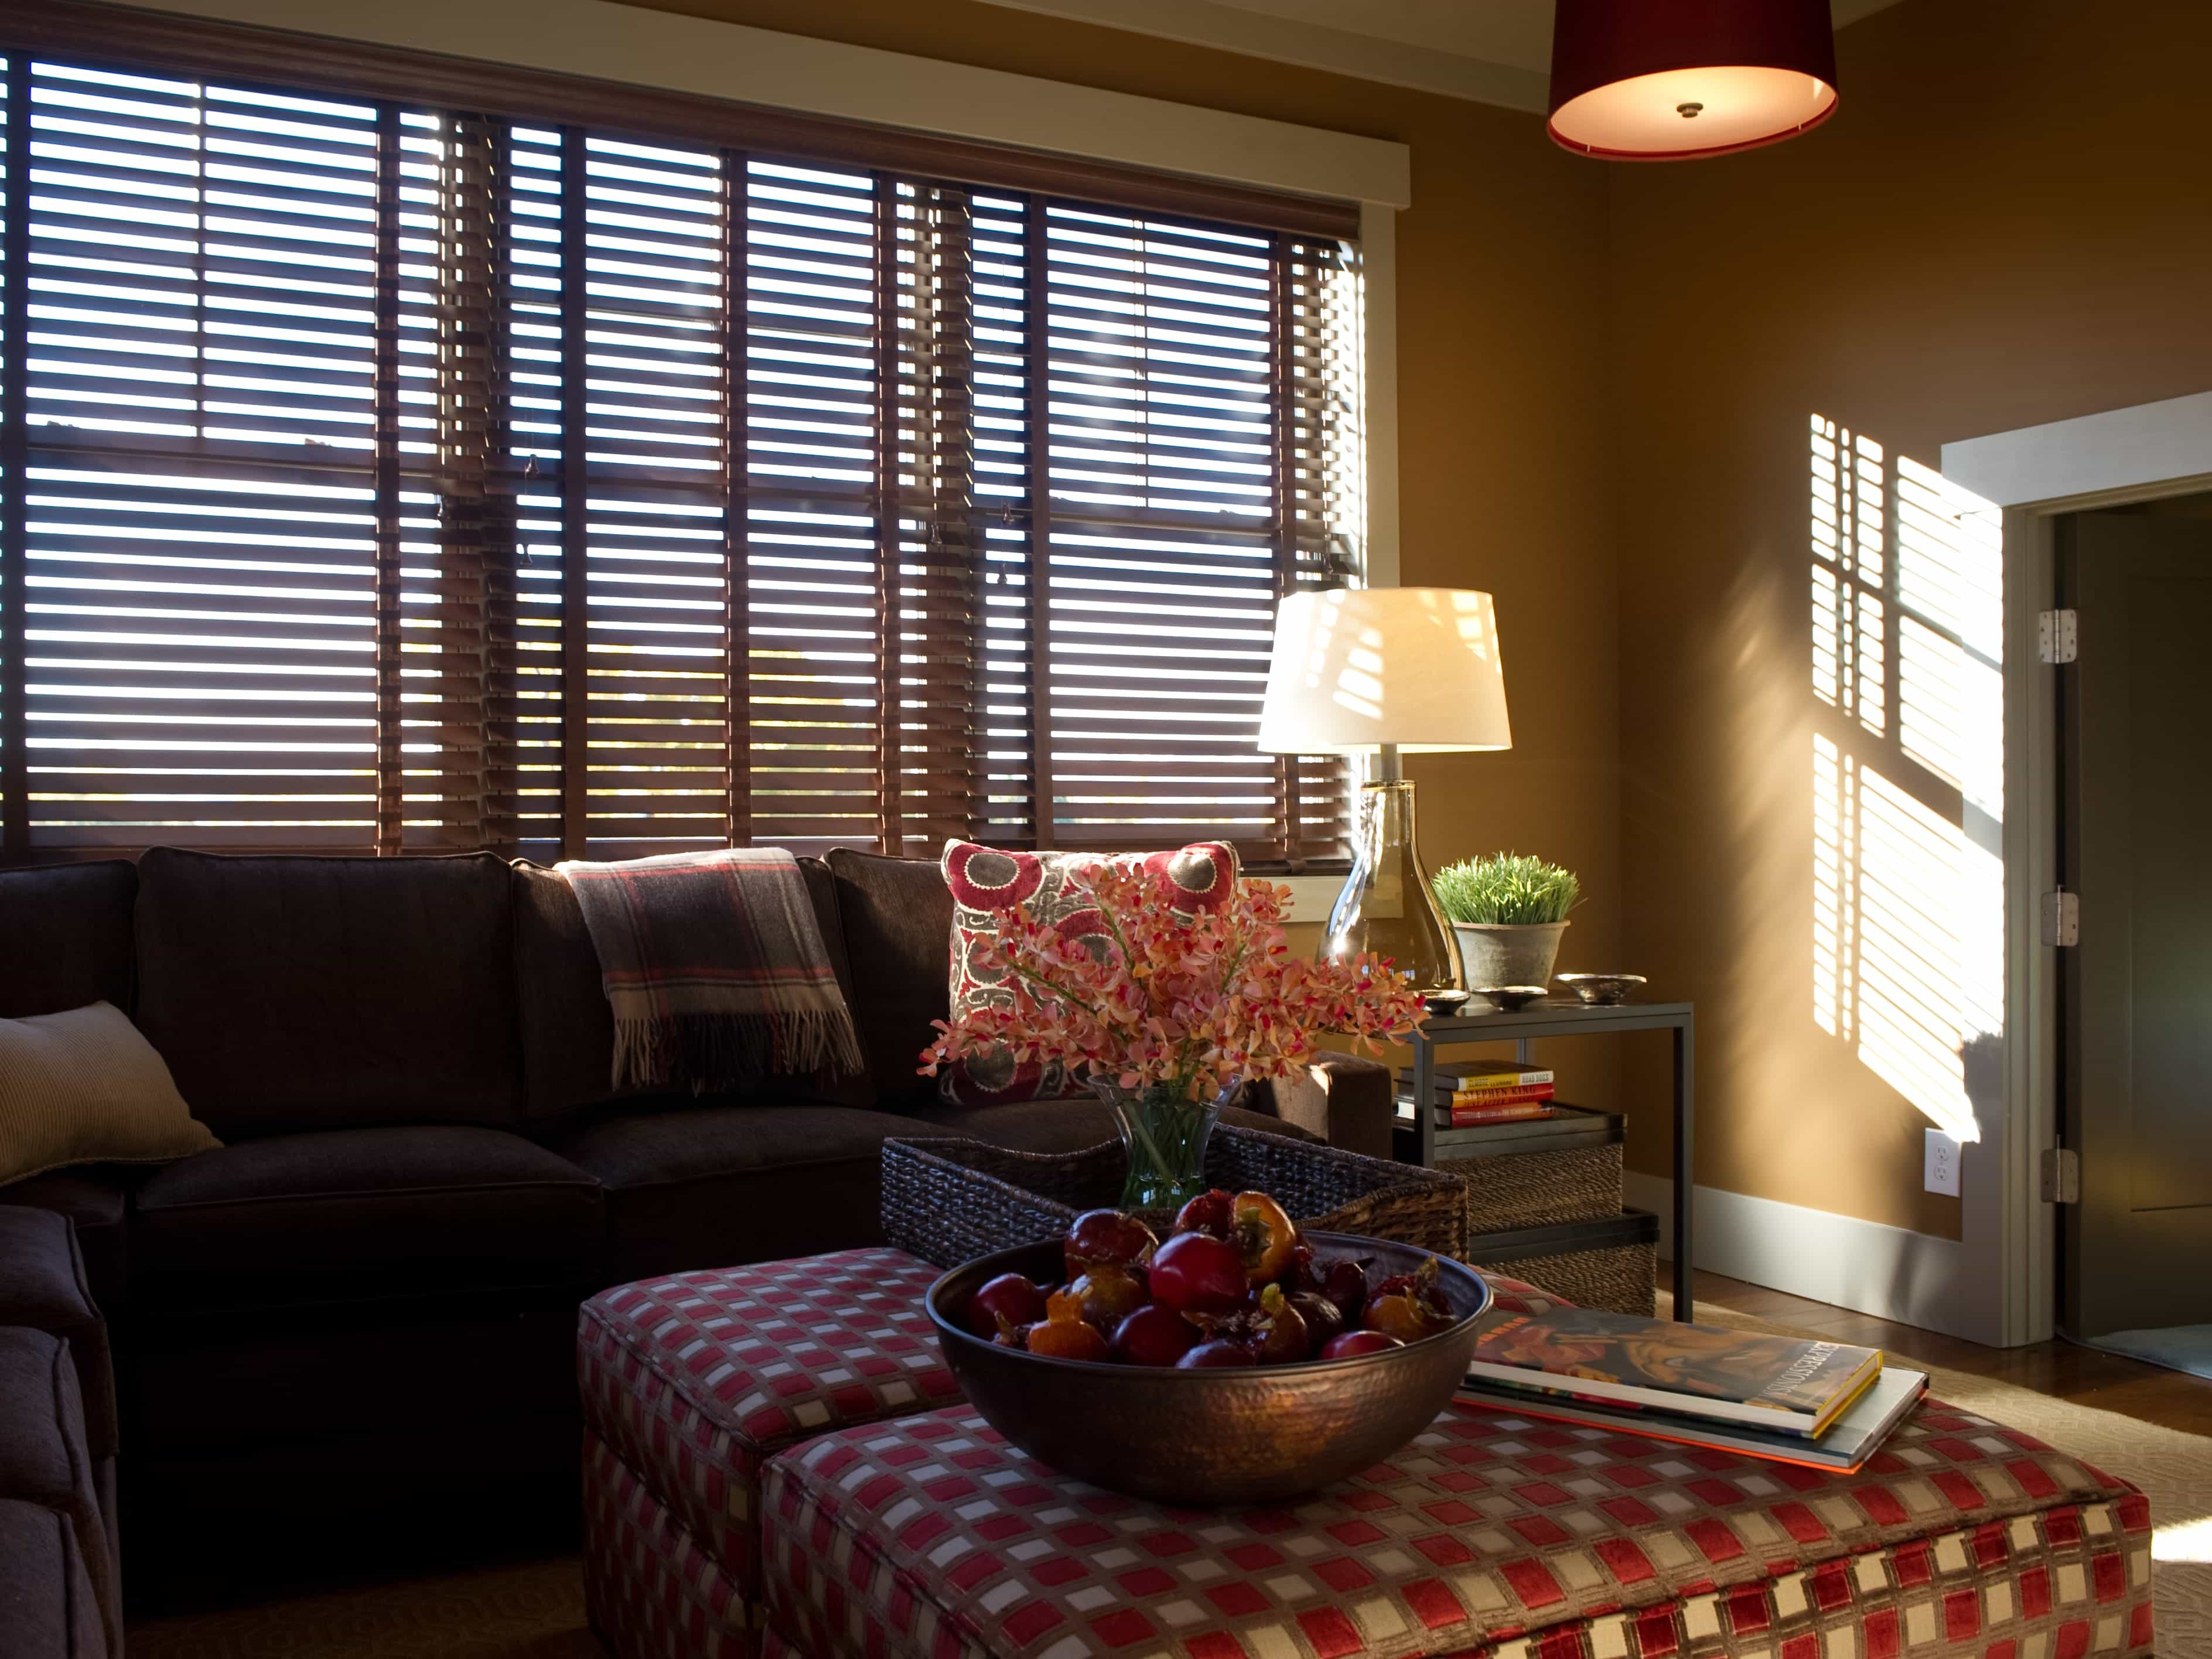 Living Room With Wooden Sliding Shutter Windows (Image 12 of 27)